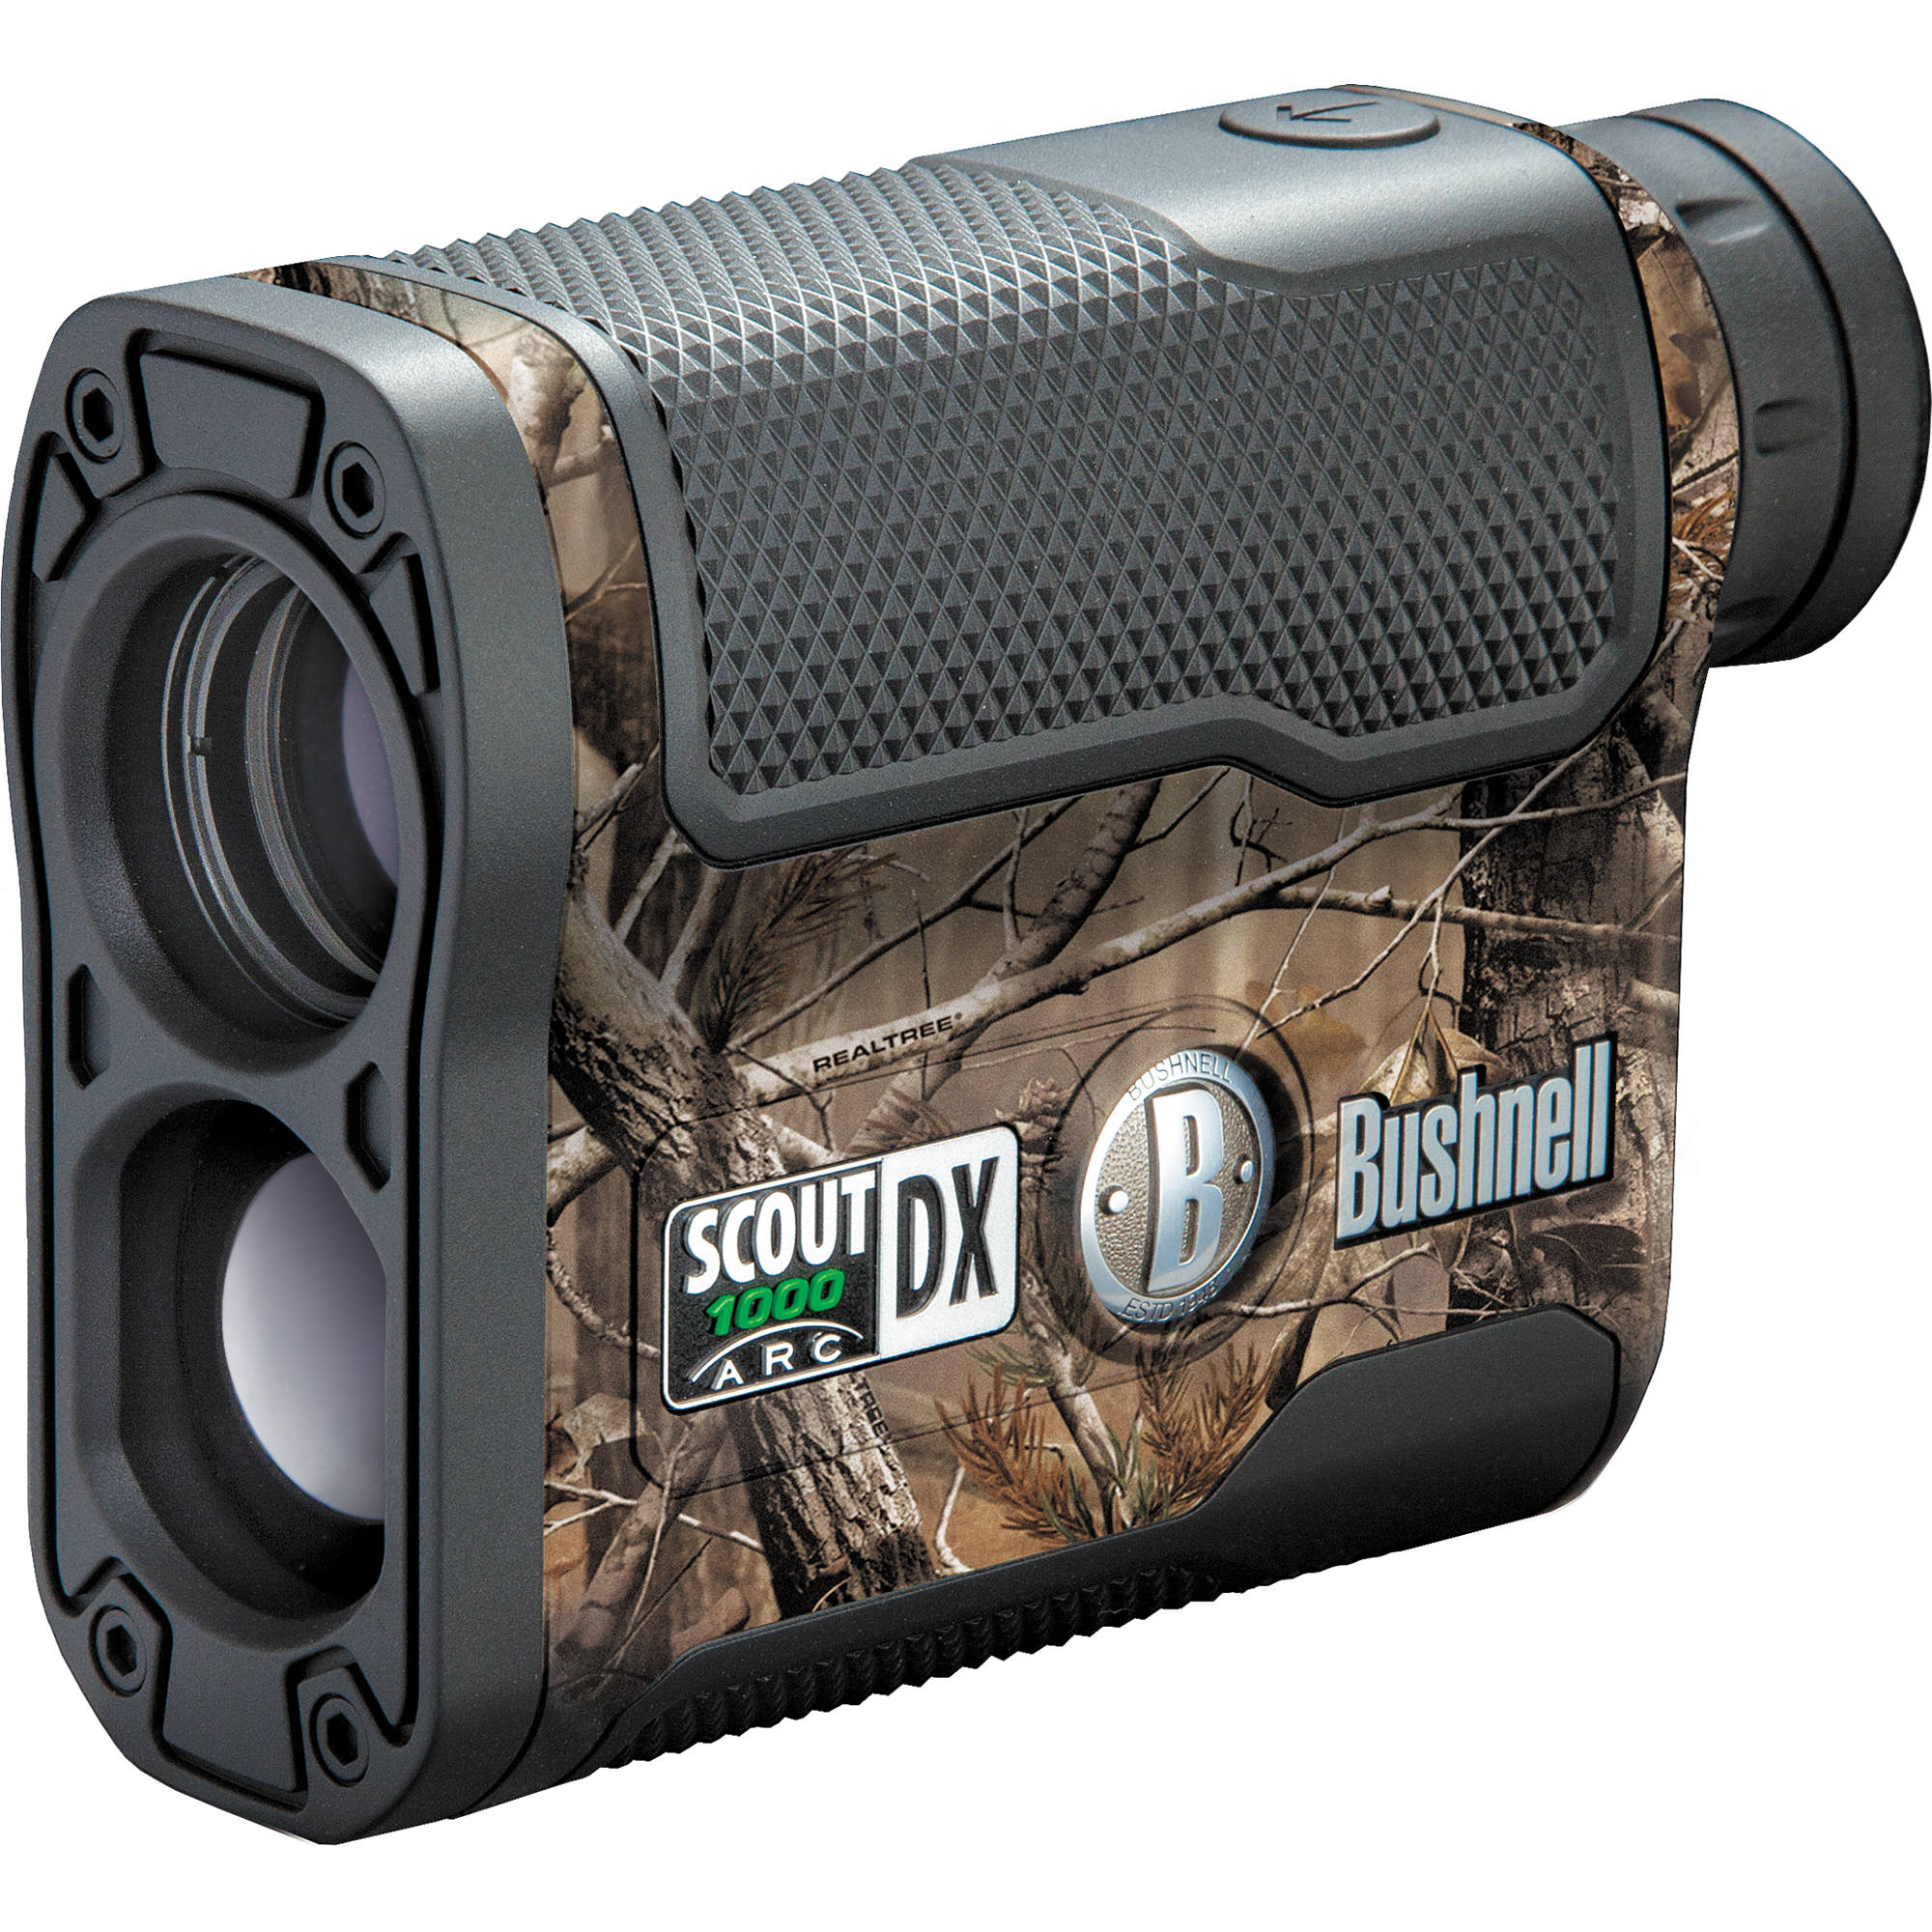 Image for Bushnell Dx Arc Rt Xtra from Circuit City